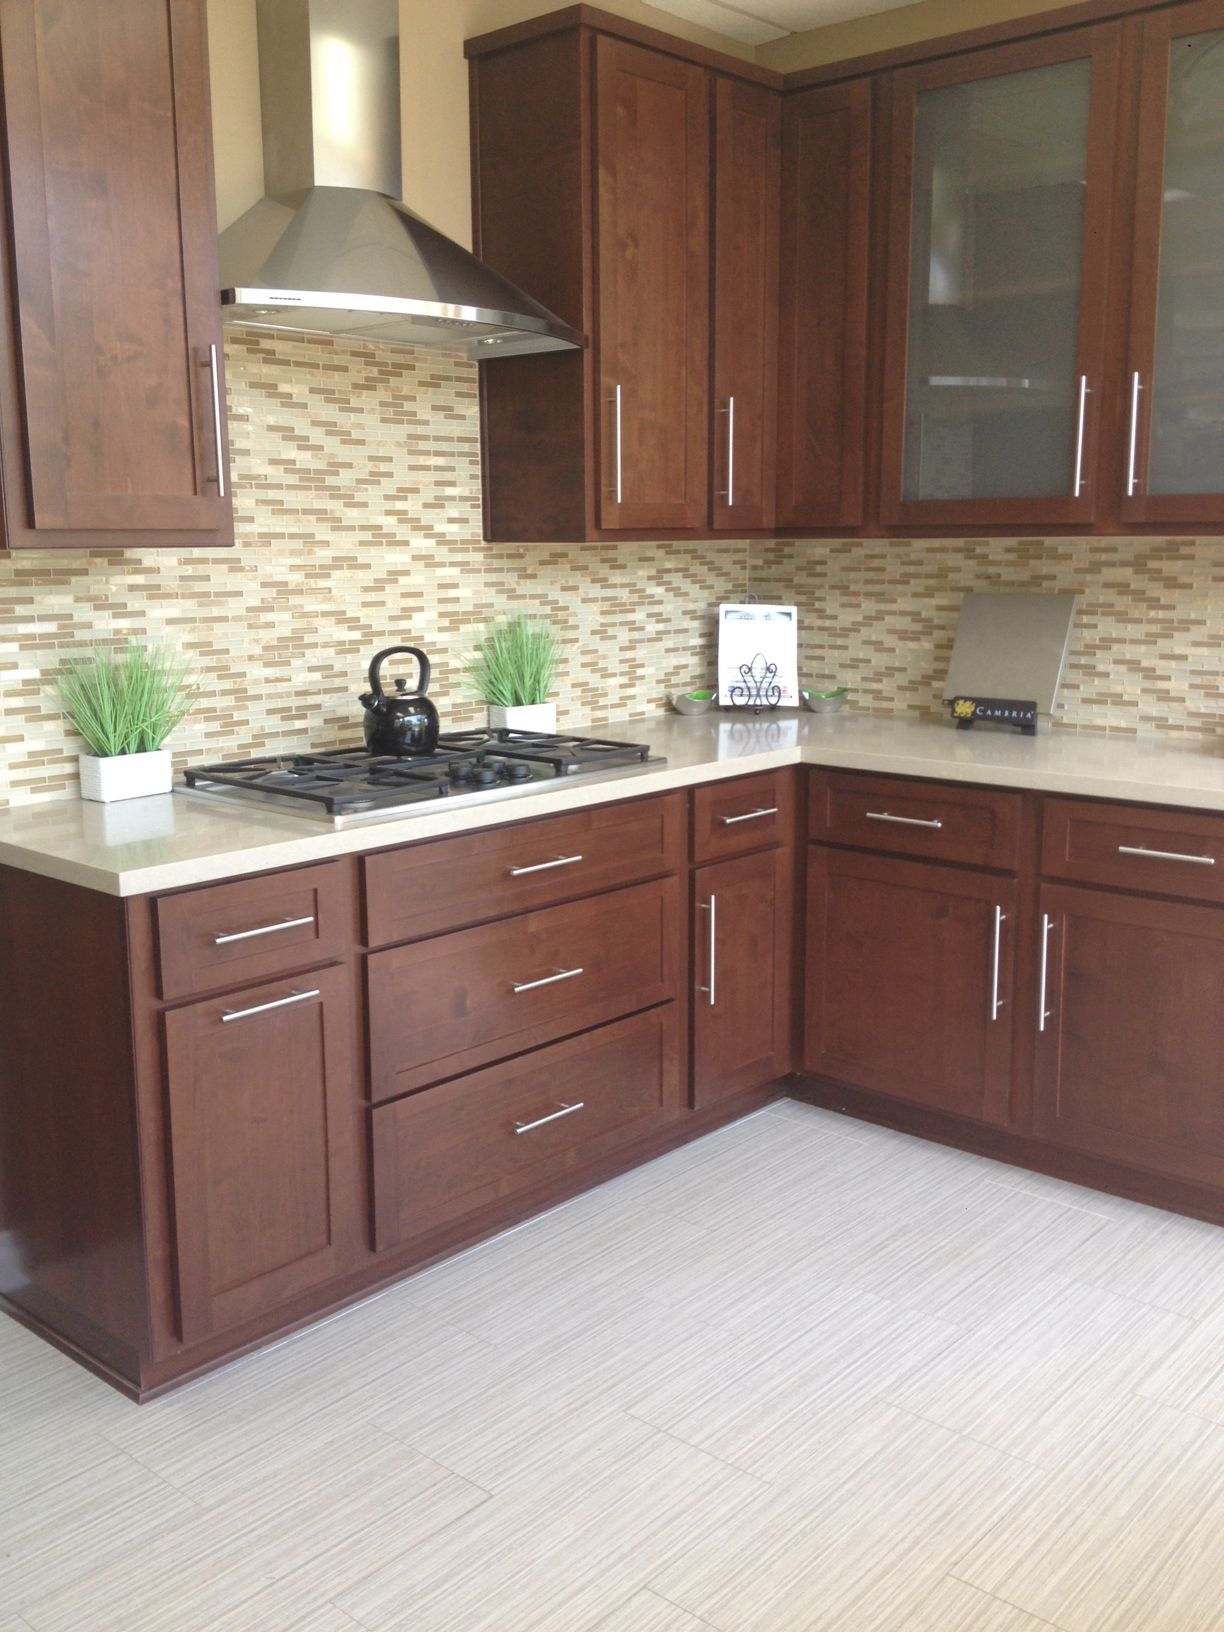 Kitchen Remodel By Mr Cabinet Care In Anaheim Ca Kitchen Remodel Cabinet Kitchen Design